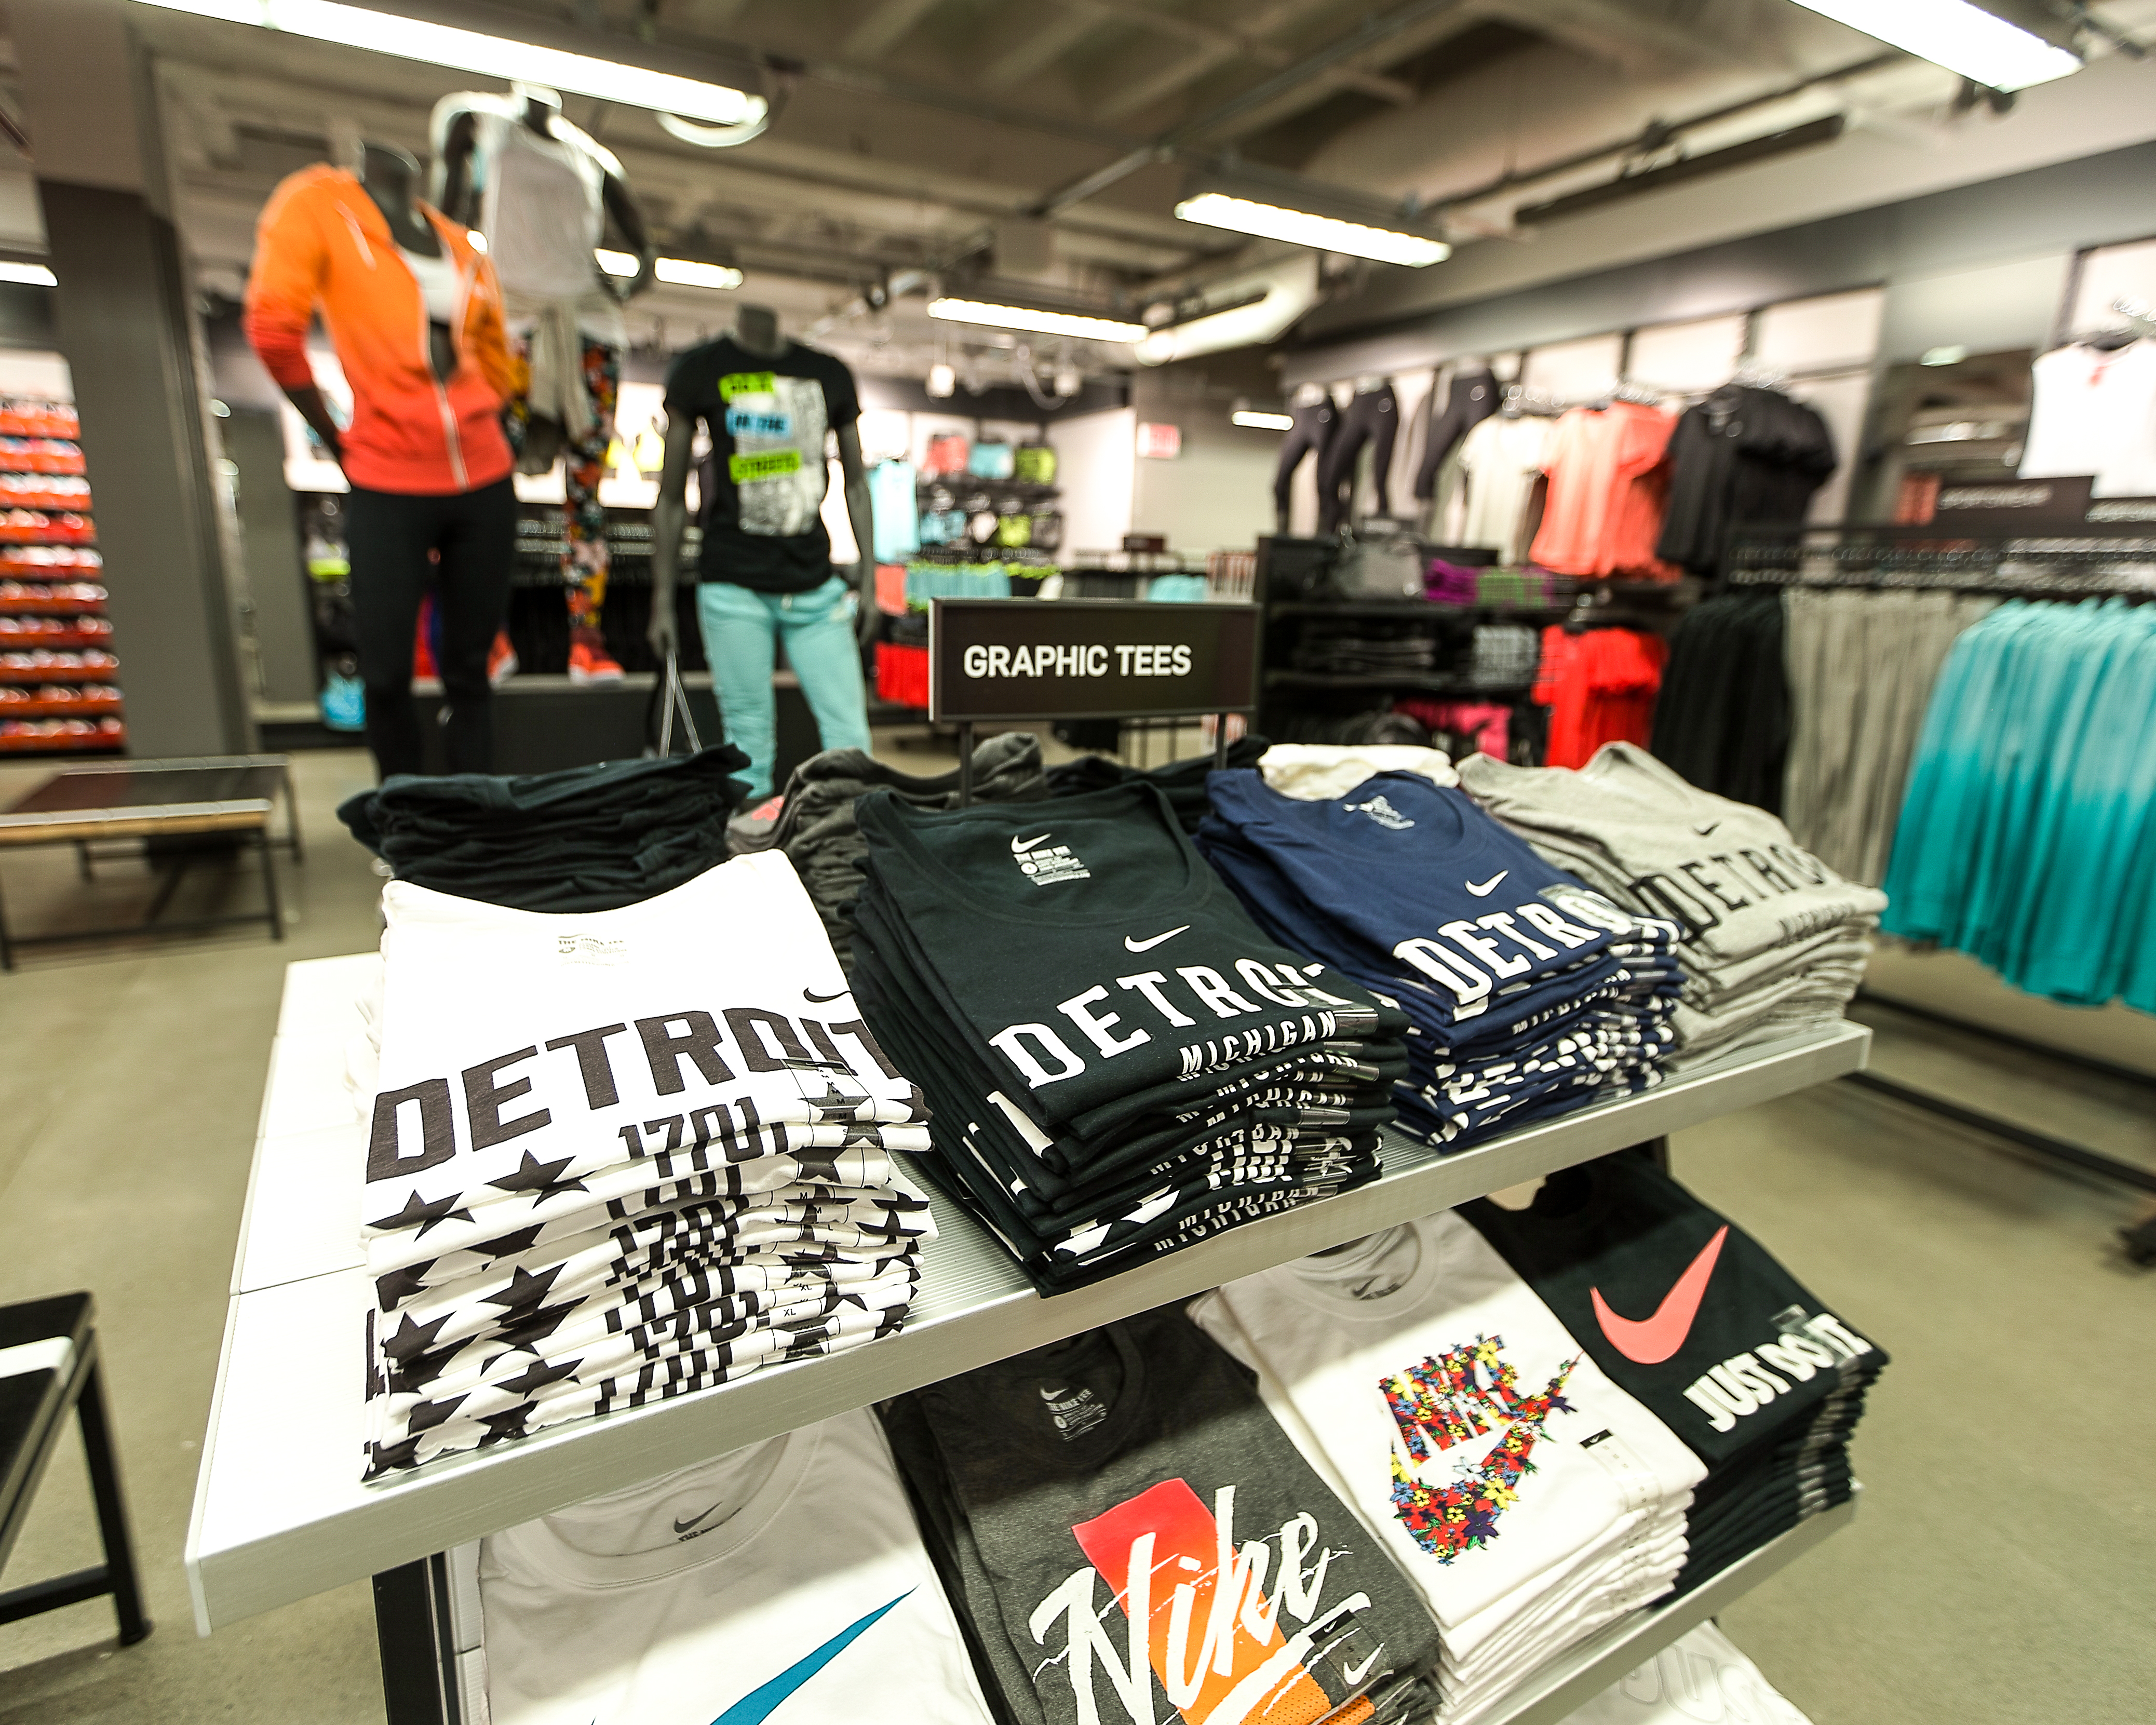 Inside Nike's new Community Store in downtown Detroit.